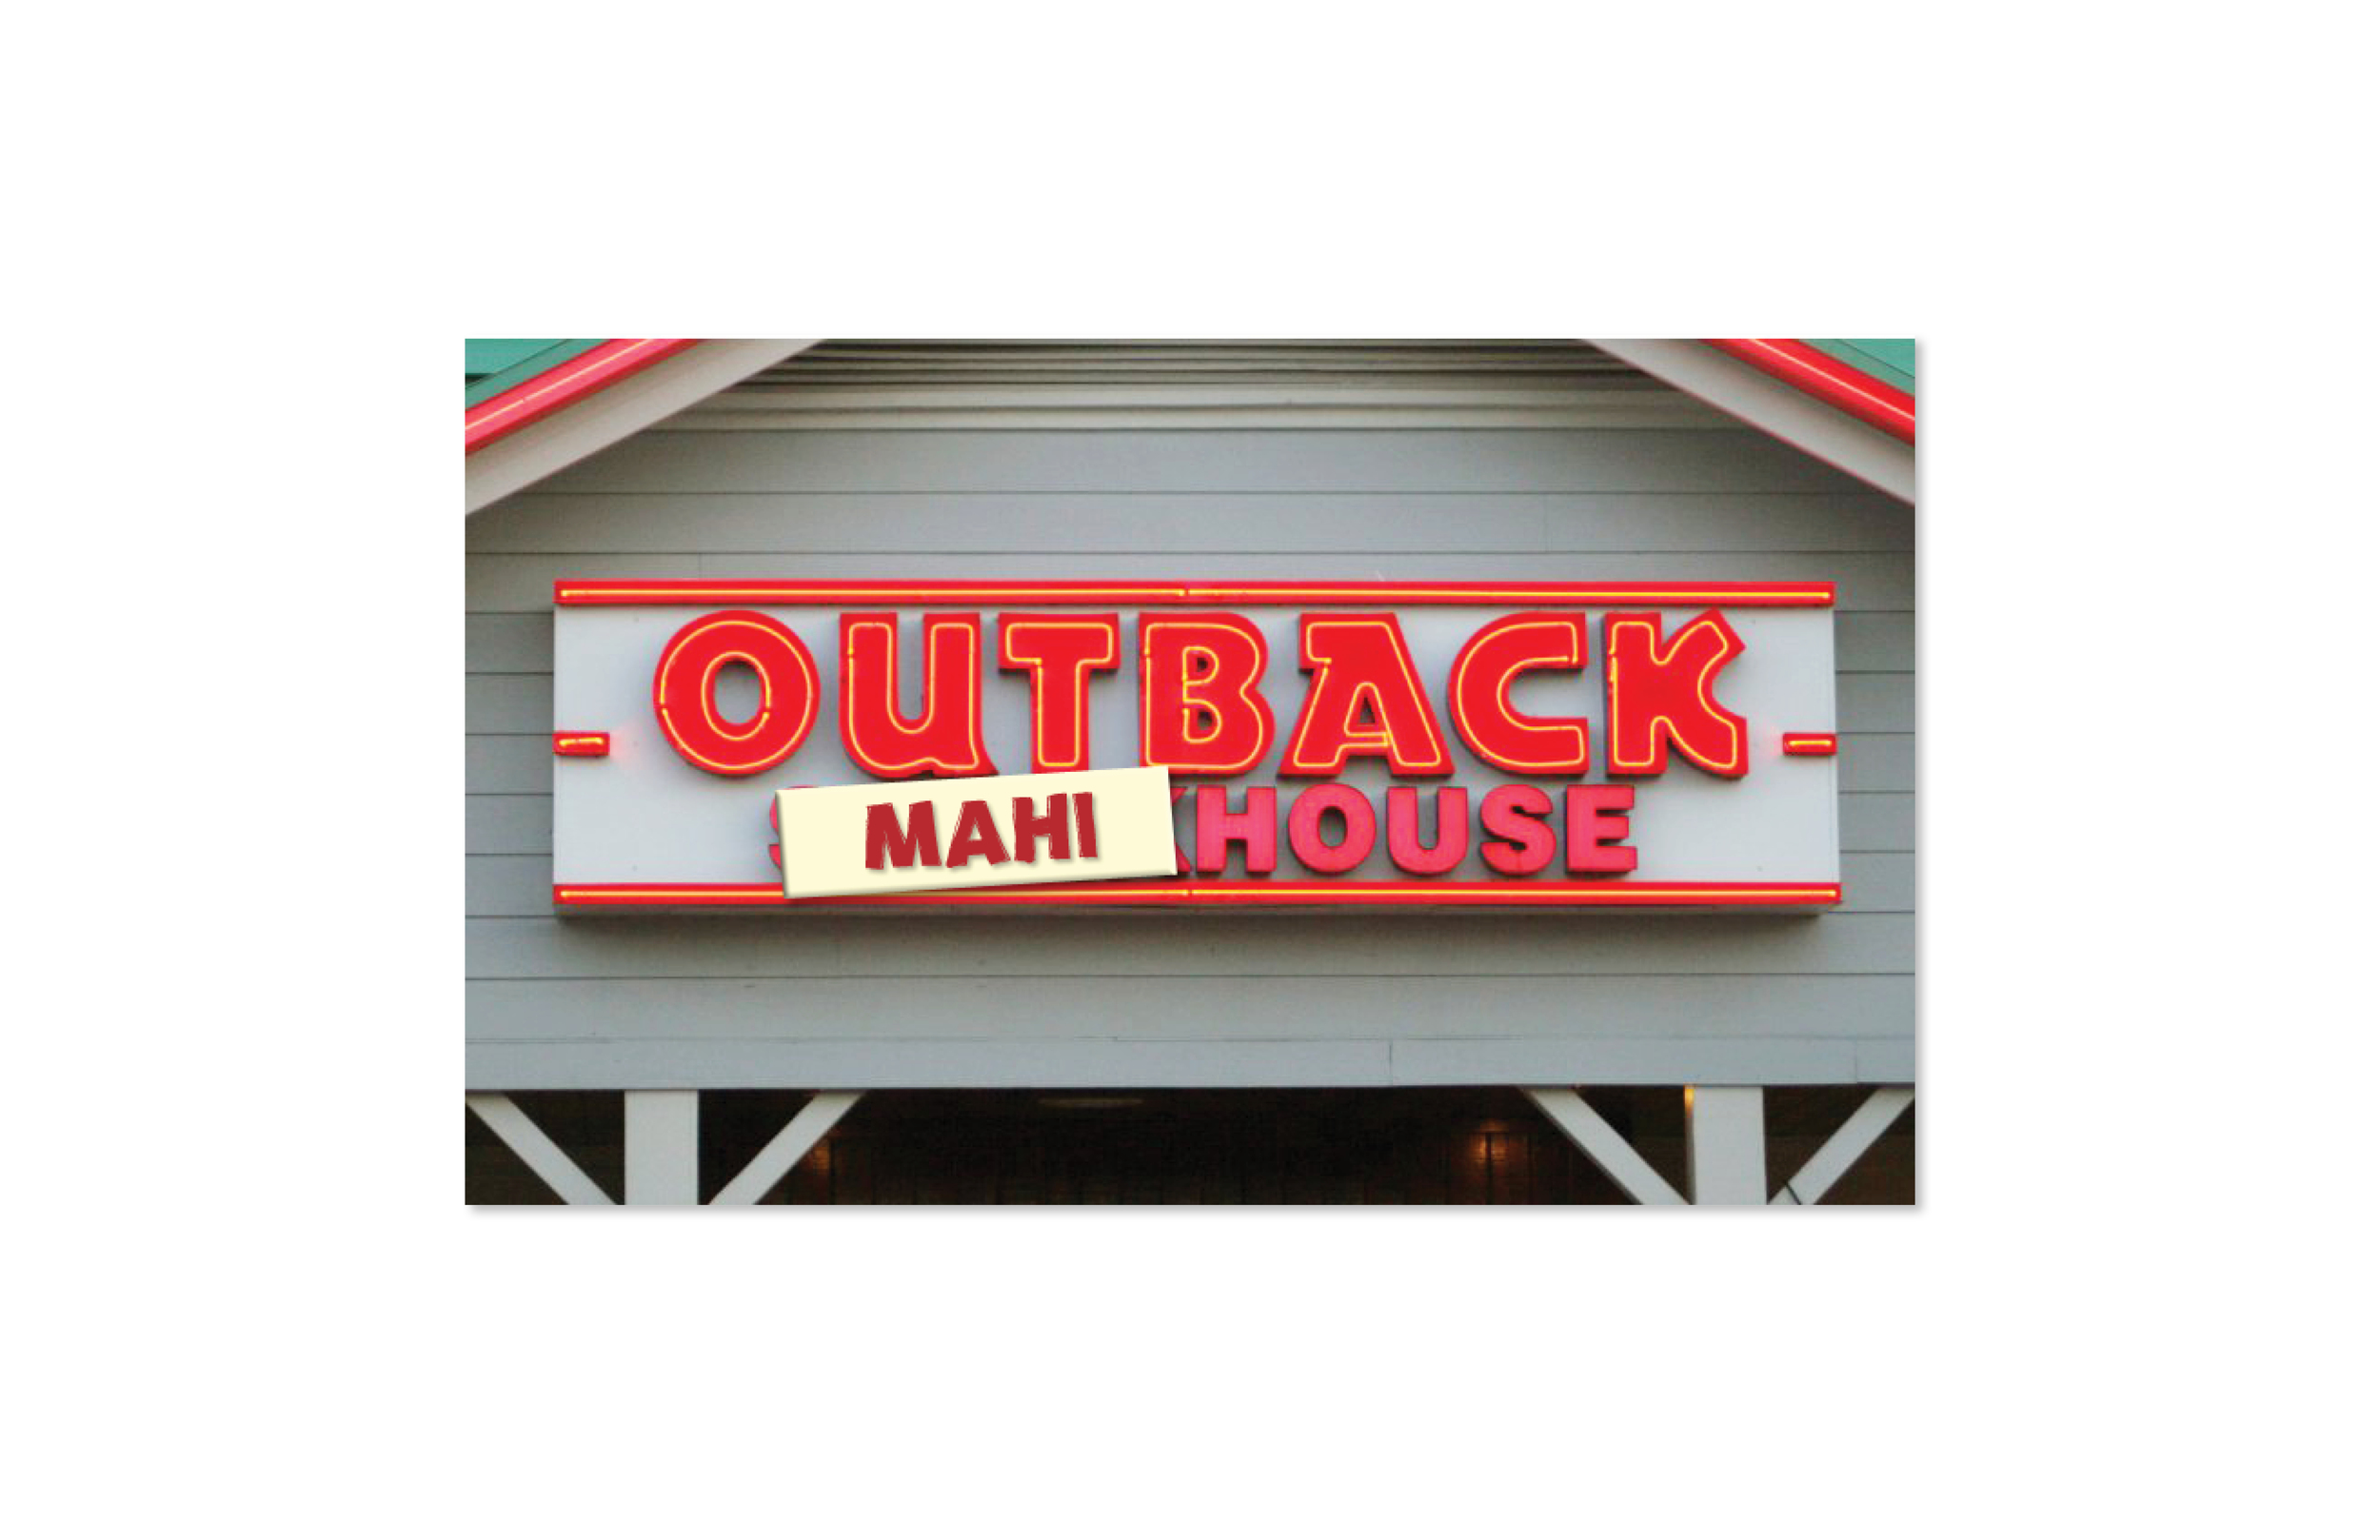 """Instore Publicilty Stunt  Outback locations will receive magnets with """"Mahi,"""" """"Shrimp"""" and """"Crab Legs"""" printed on them. The magnets can be attached to the Outback sign in front of every location. Participating locations can temporarily change the name of their Outback Steakhouse to Outback Shrimphouse or Outback Mahihouse, etc. There should be significant social media attention."""